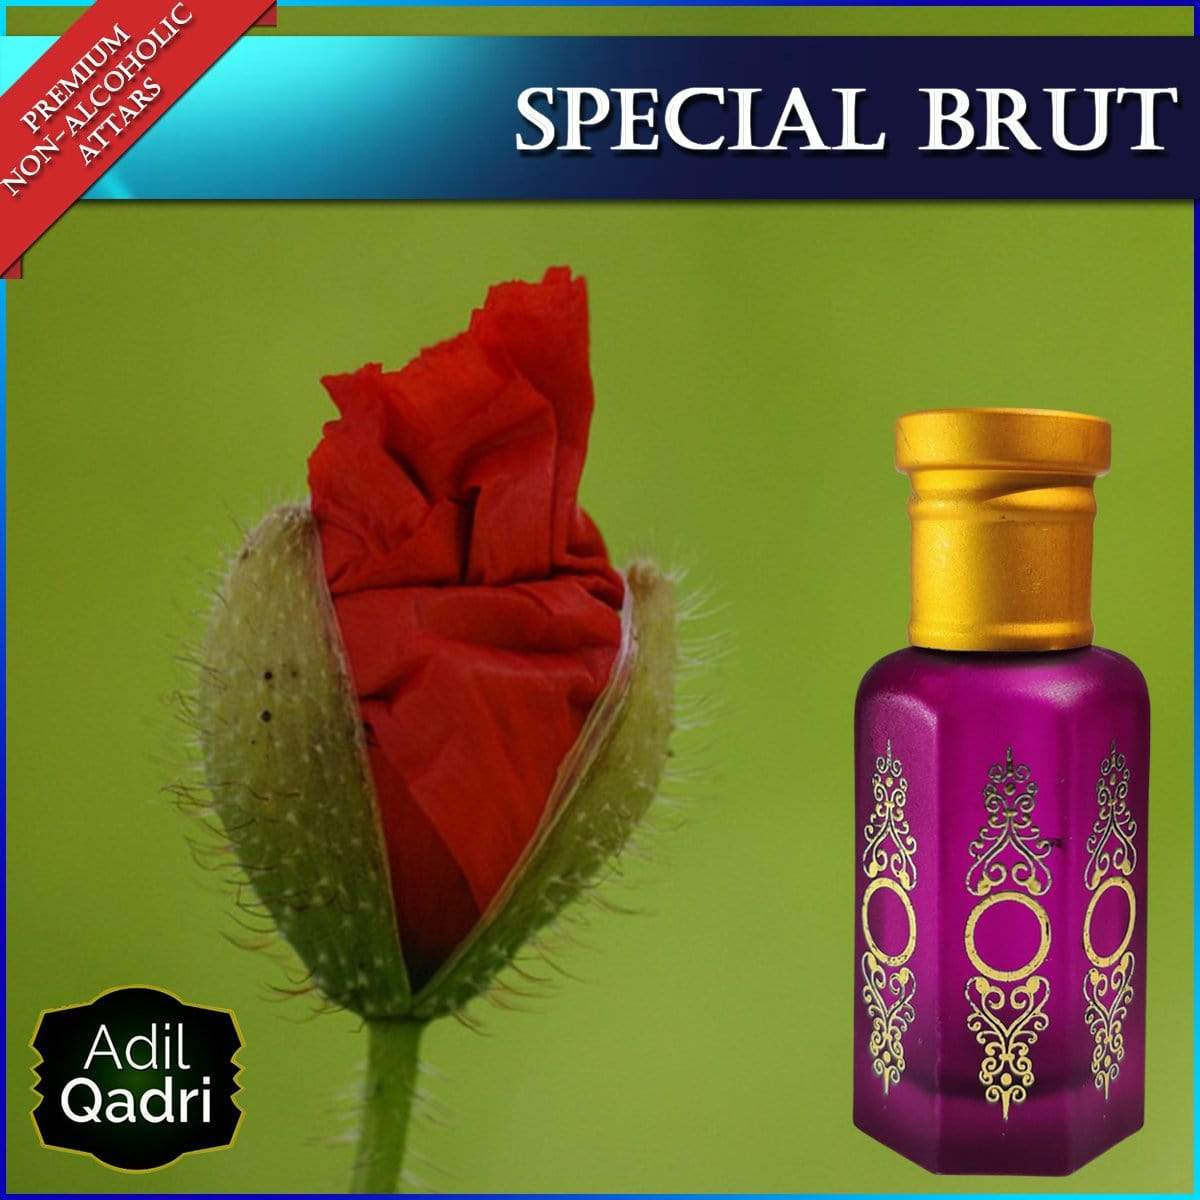 Adilqadri  Sp. BRUT Premium Quality Synthetic Attar